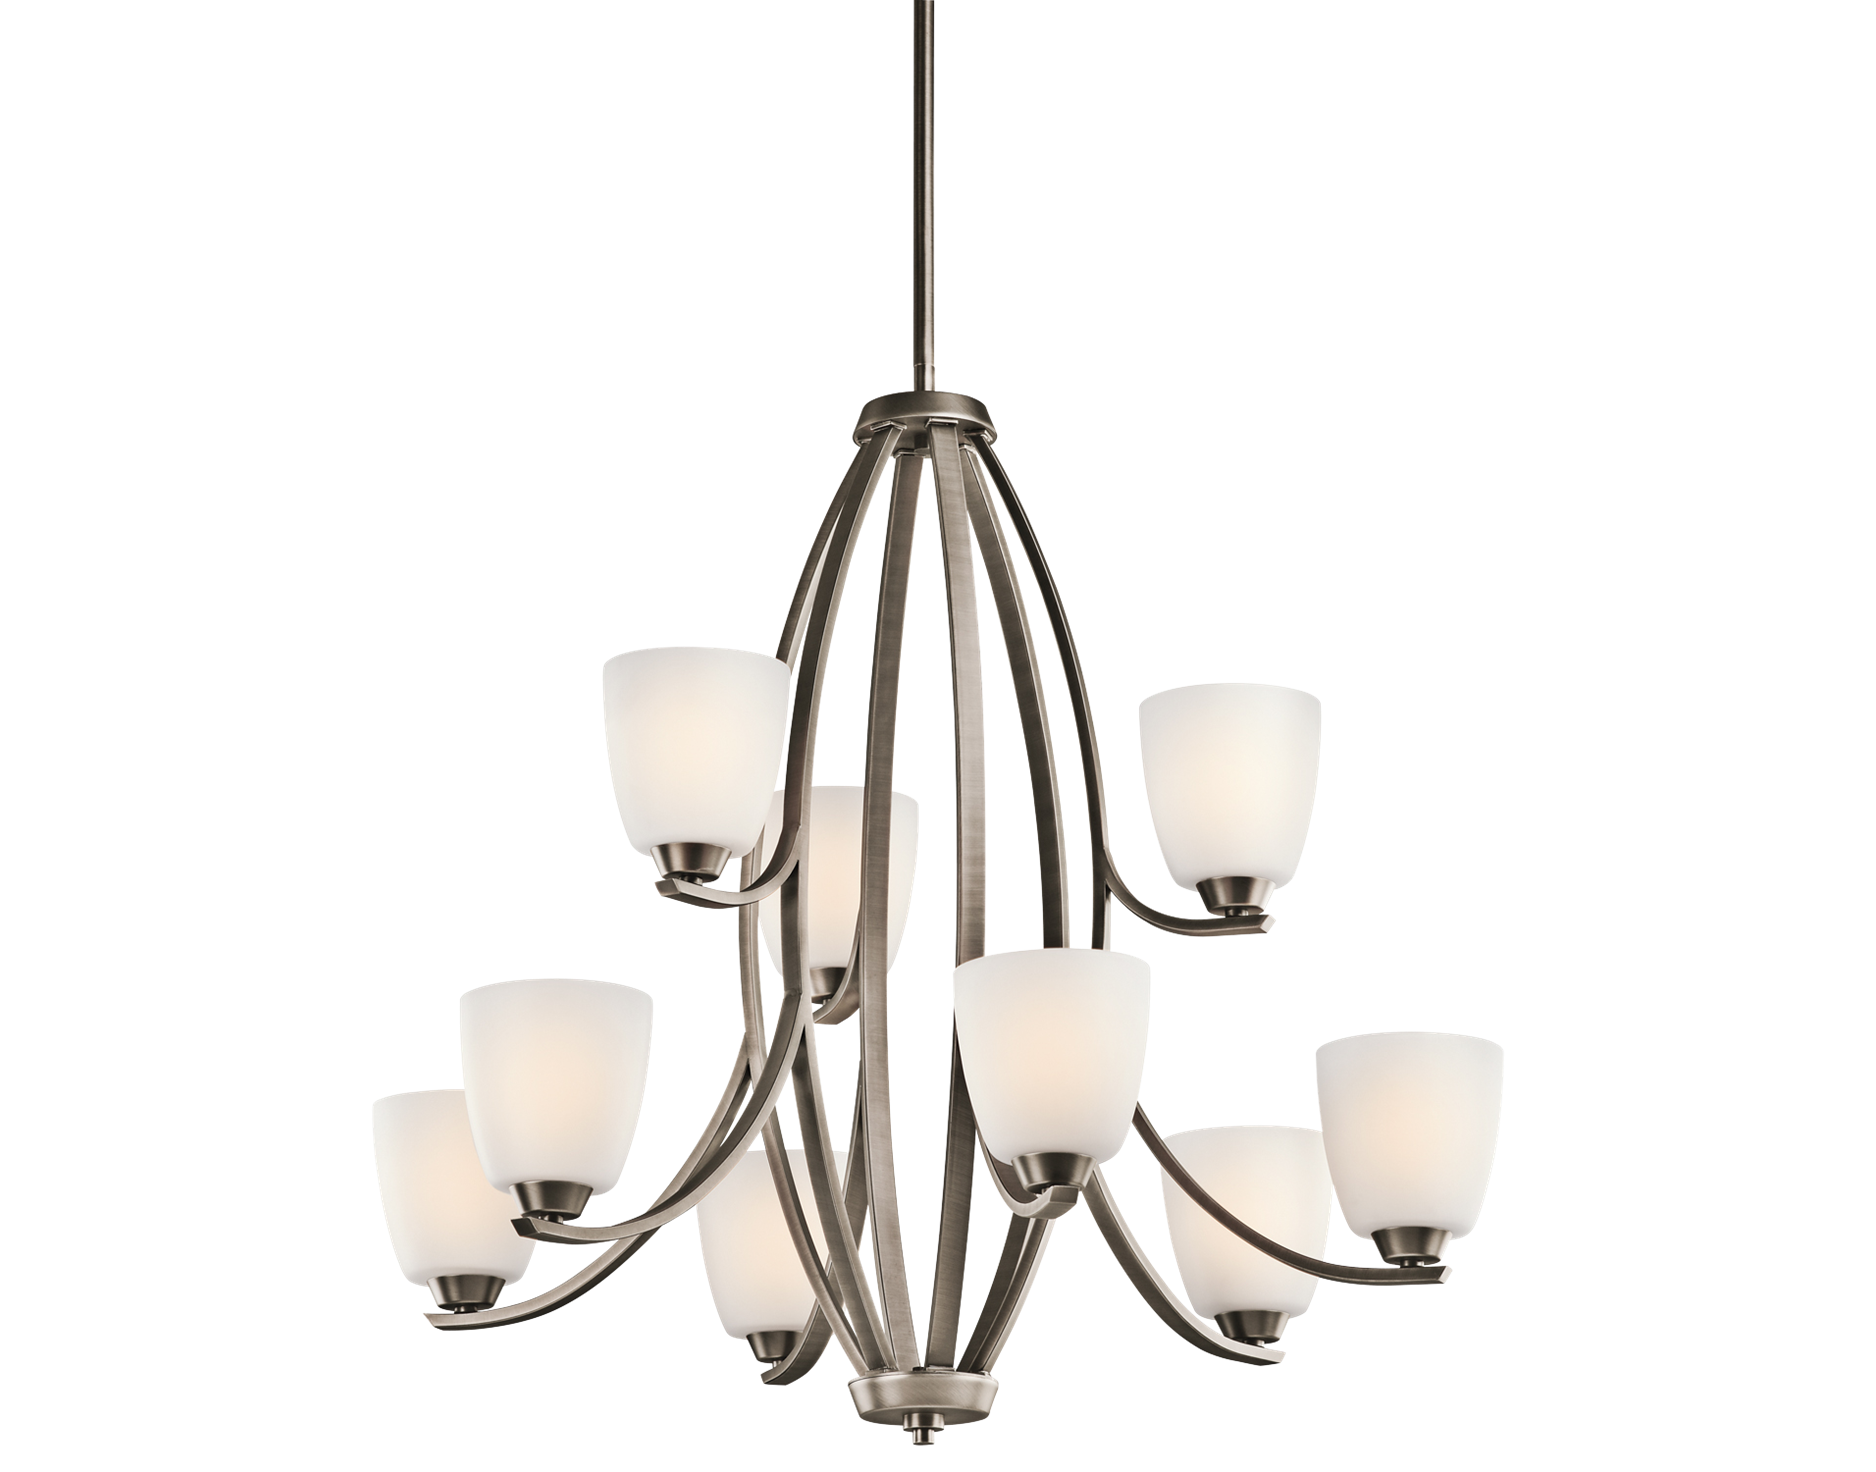 Group 6 Granby Collection 2 Story Foyer Chandelier in Brushed